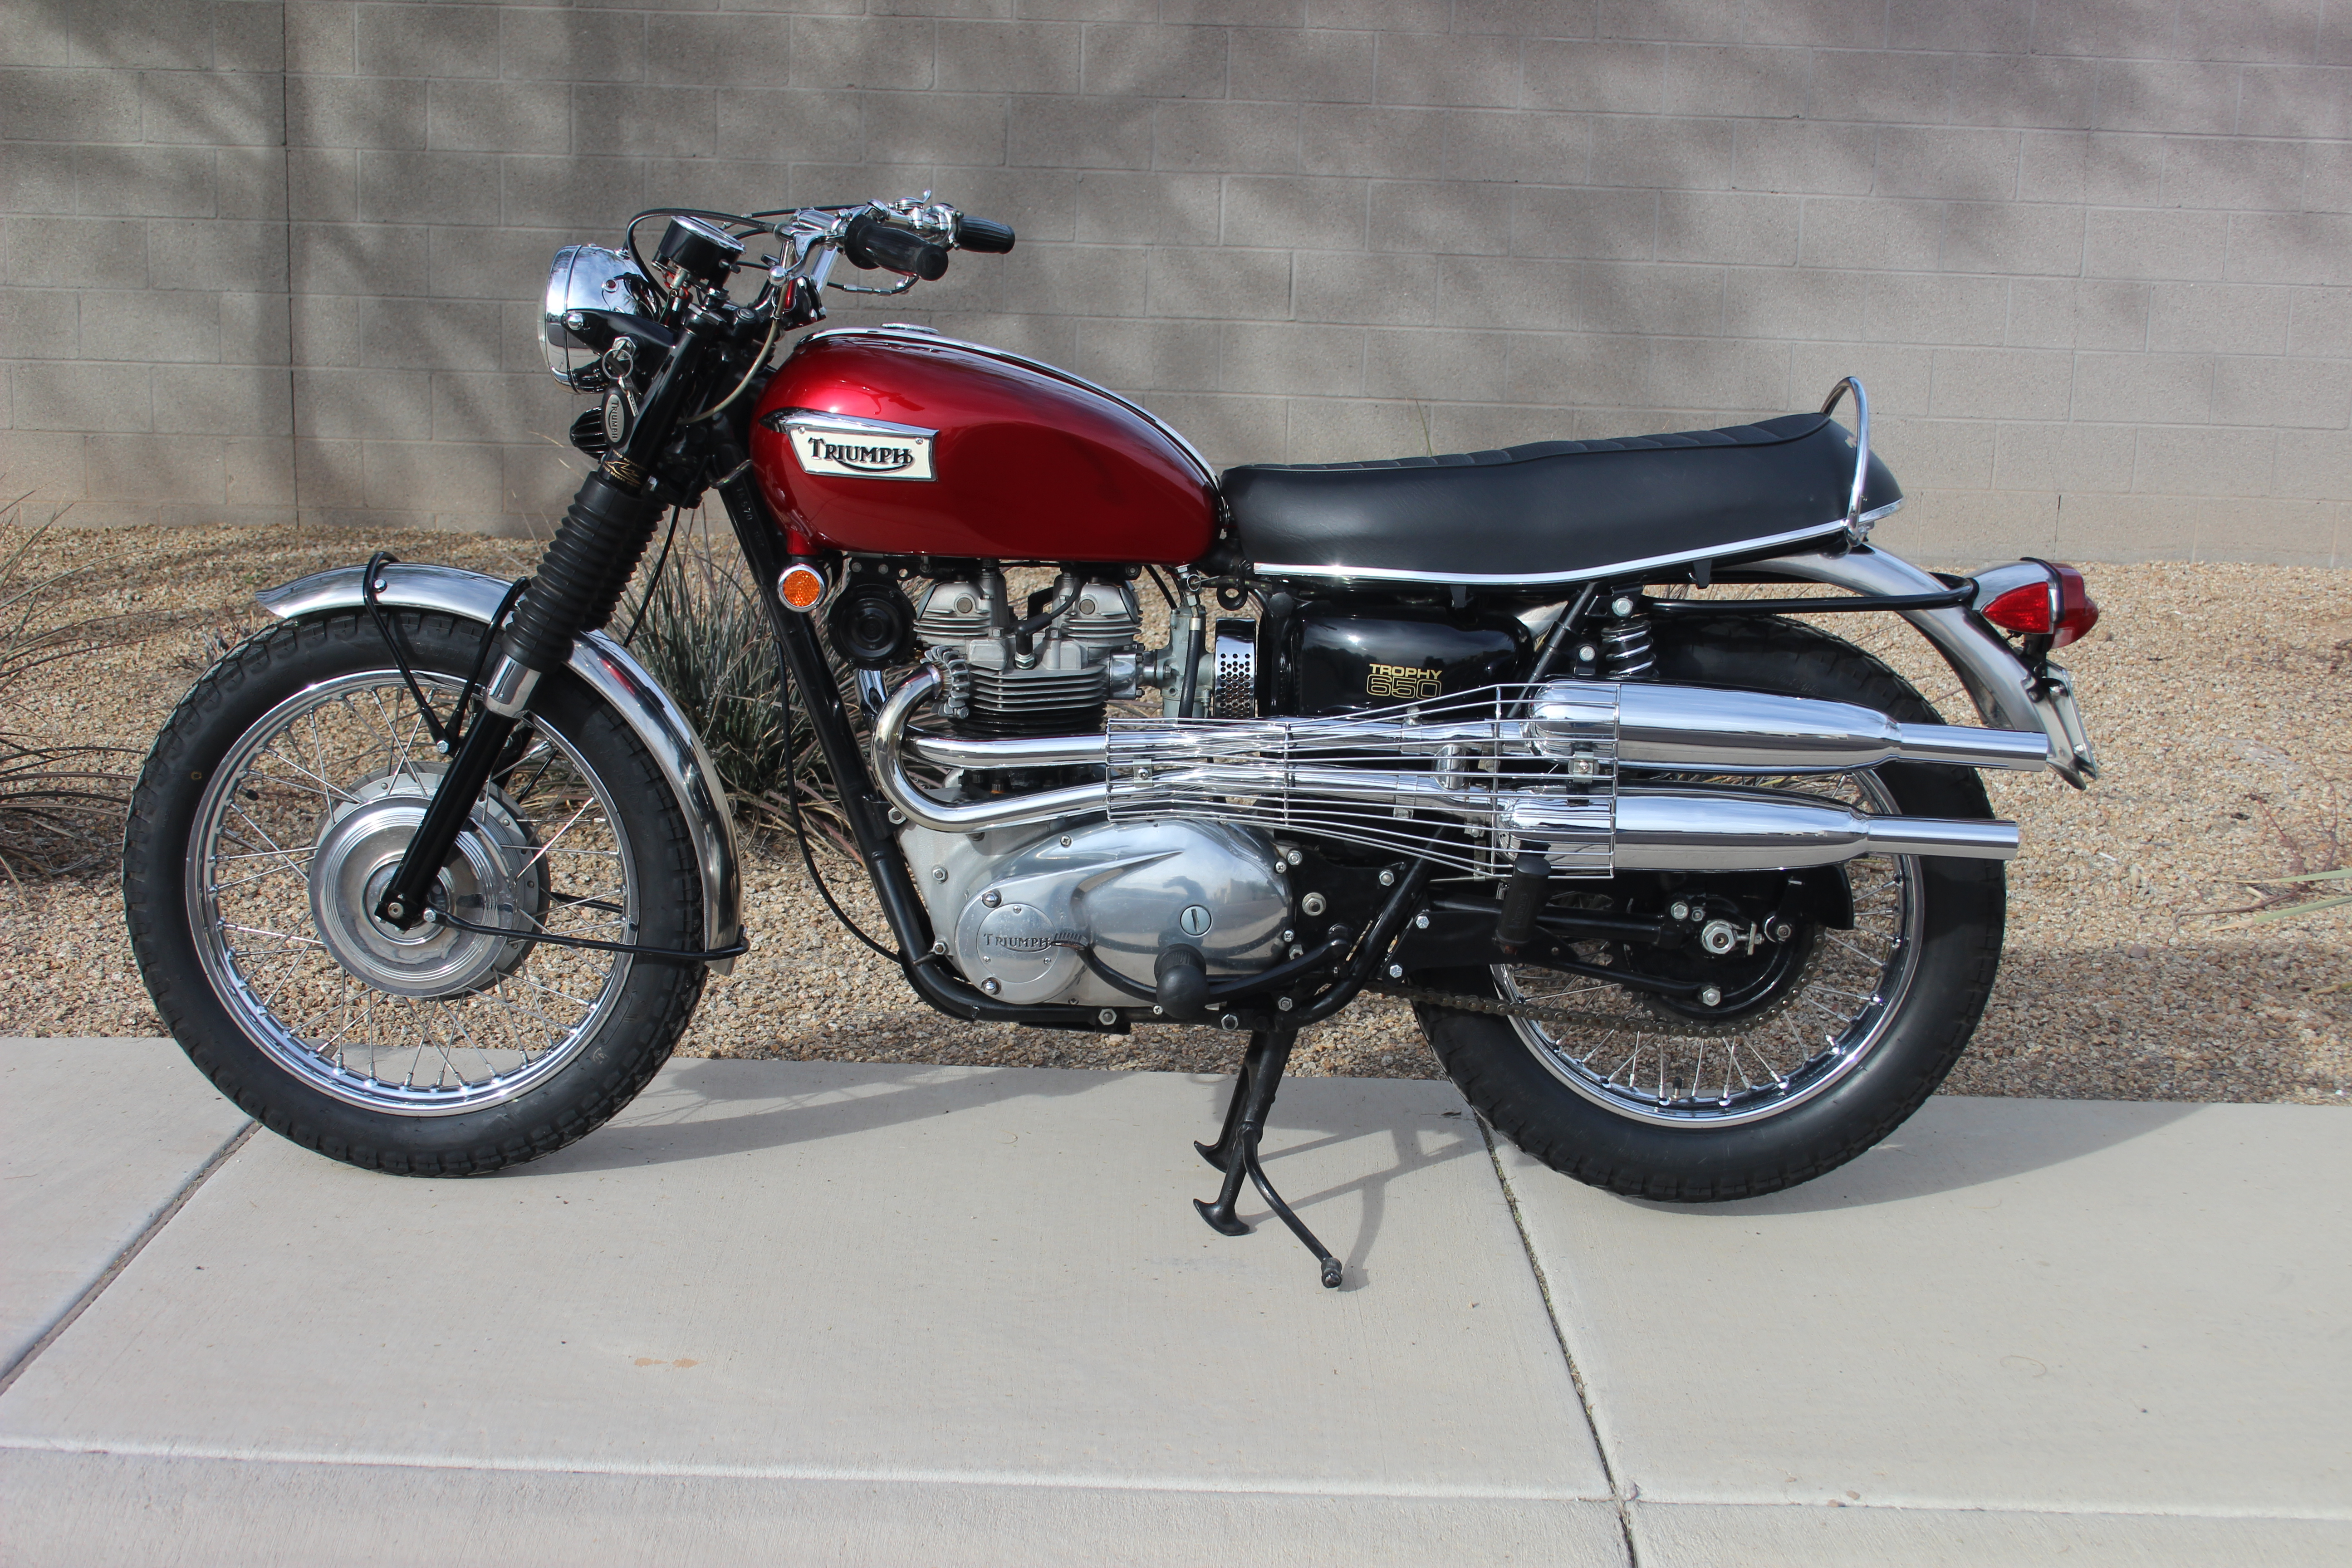 Wayne's Triumph Motorcycles: Sold, going to Michigan... 1969 Triumph